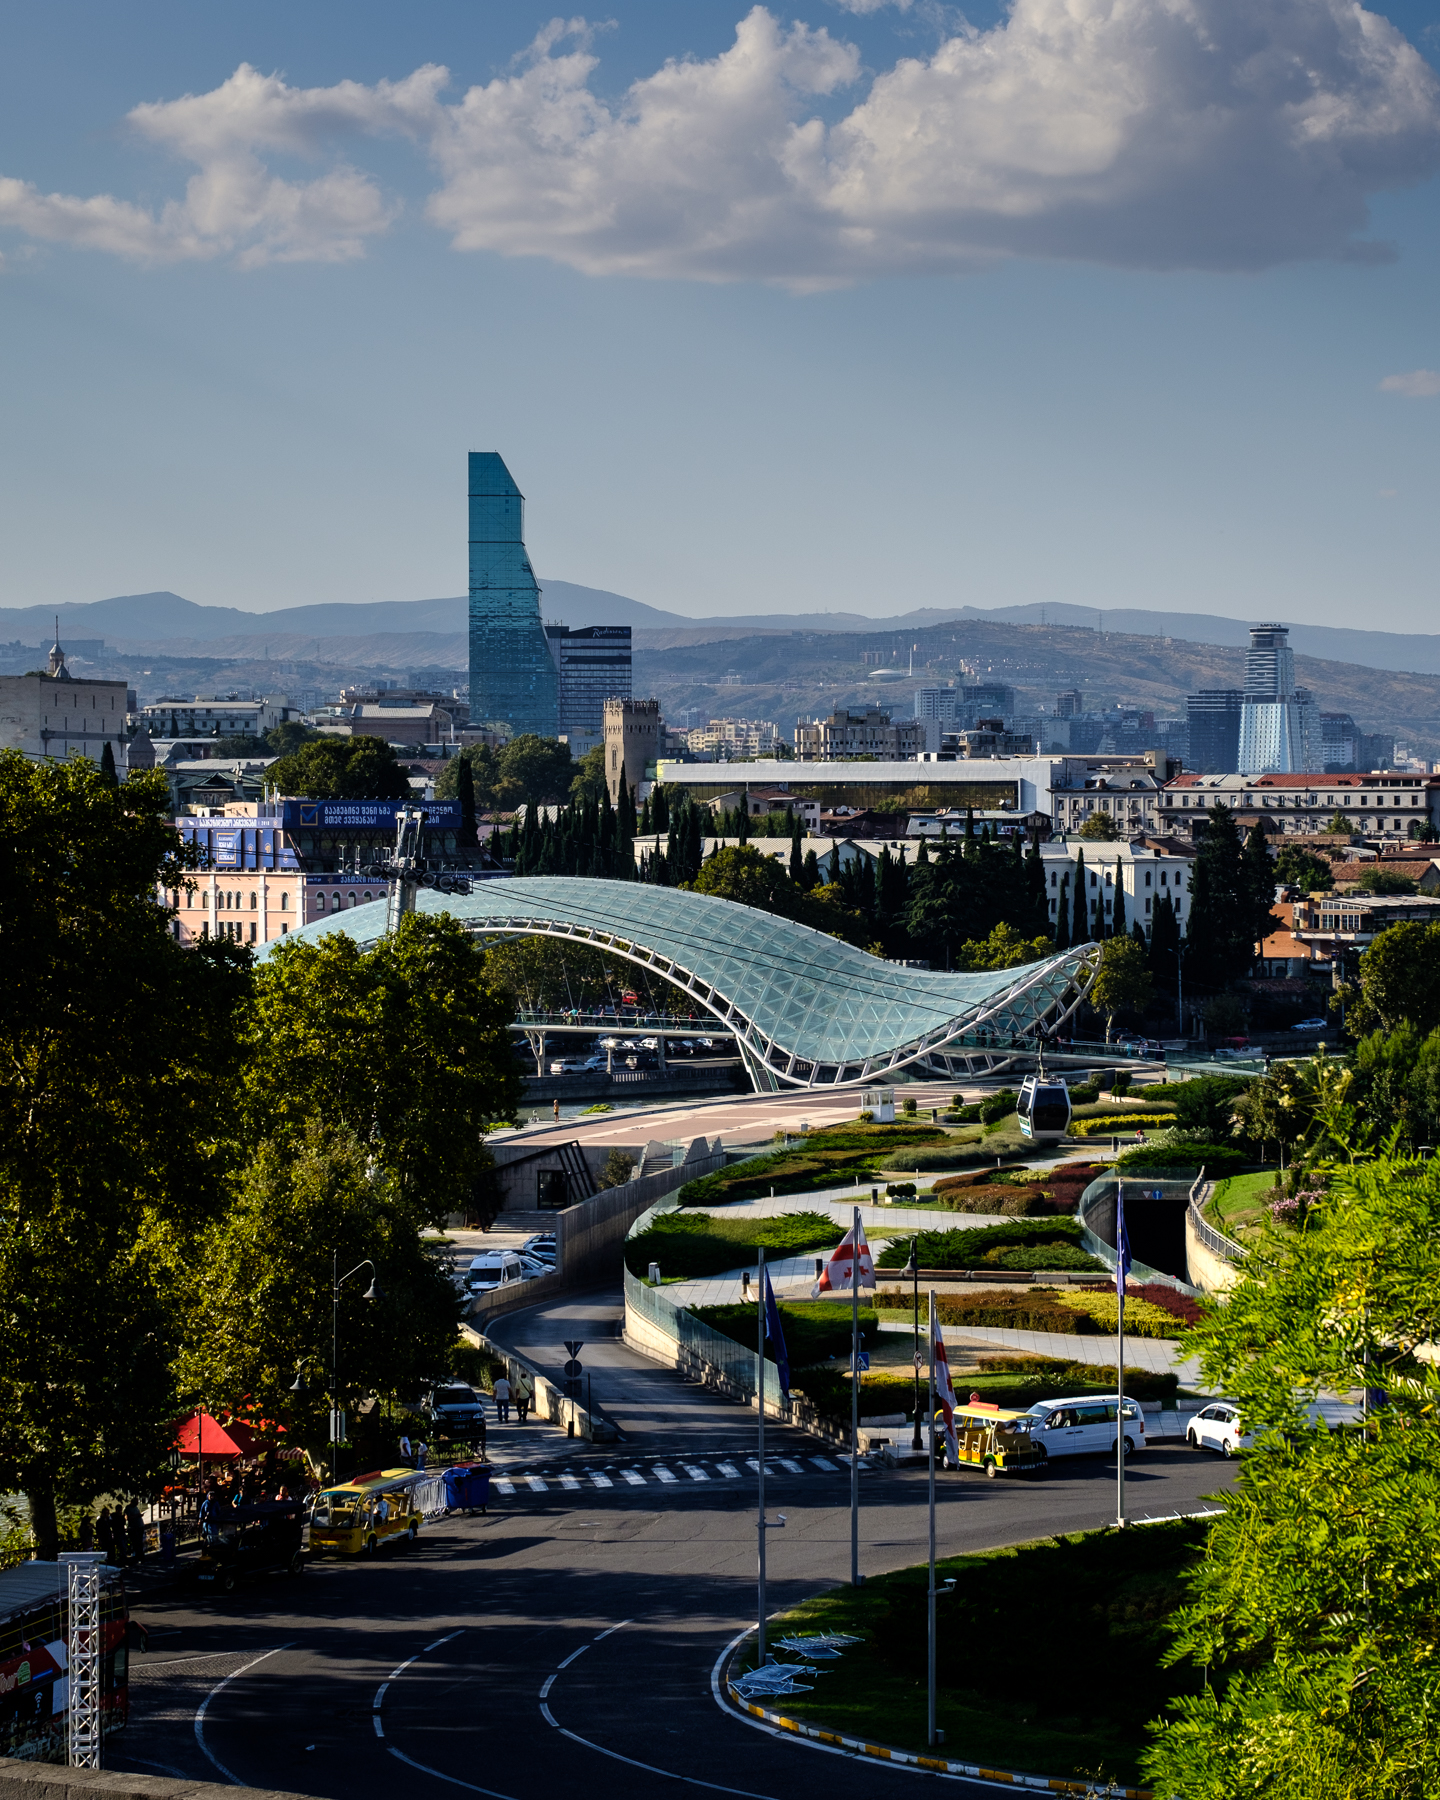 The other Tbilisi